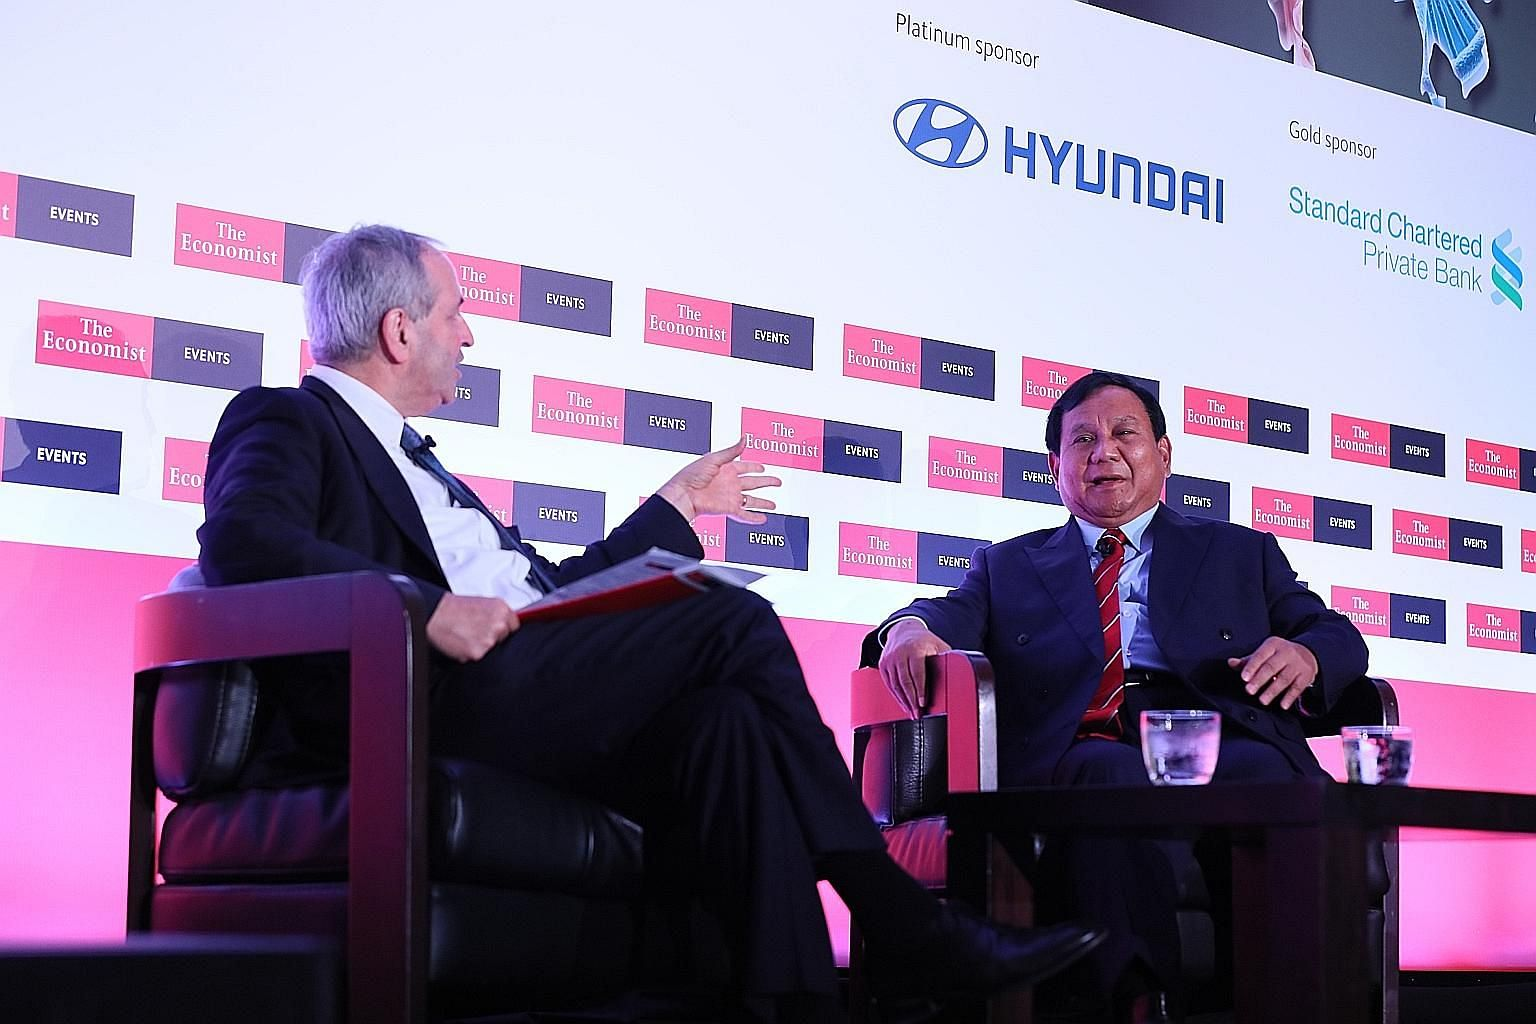 Indonesian presidential candidate Prabowo Subianto with The Economist executive and diplomatic editor Daniel Franklin.